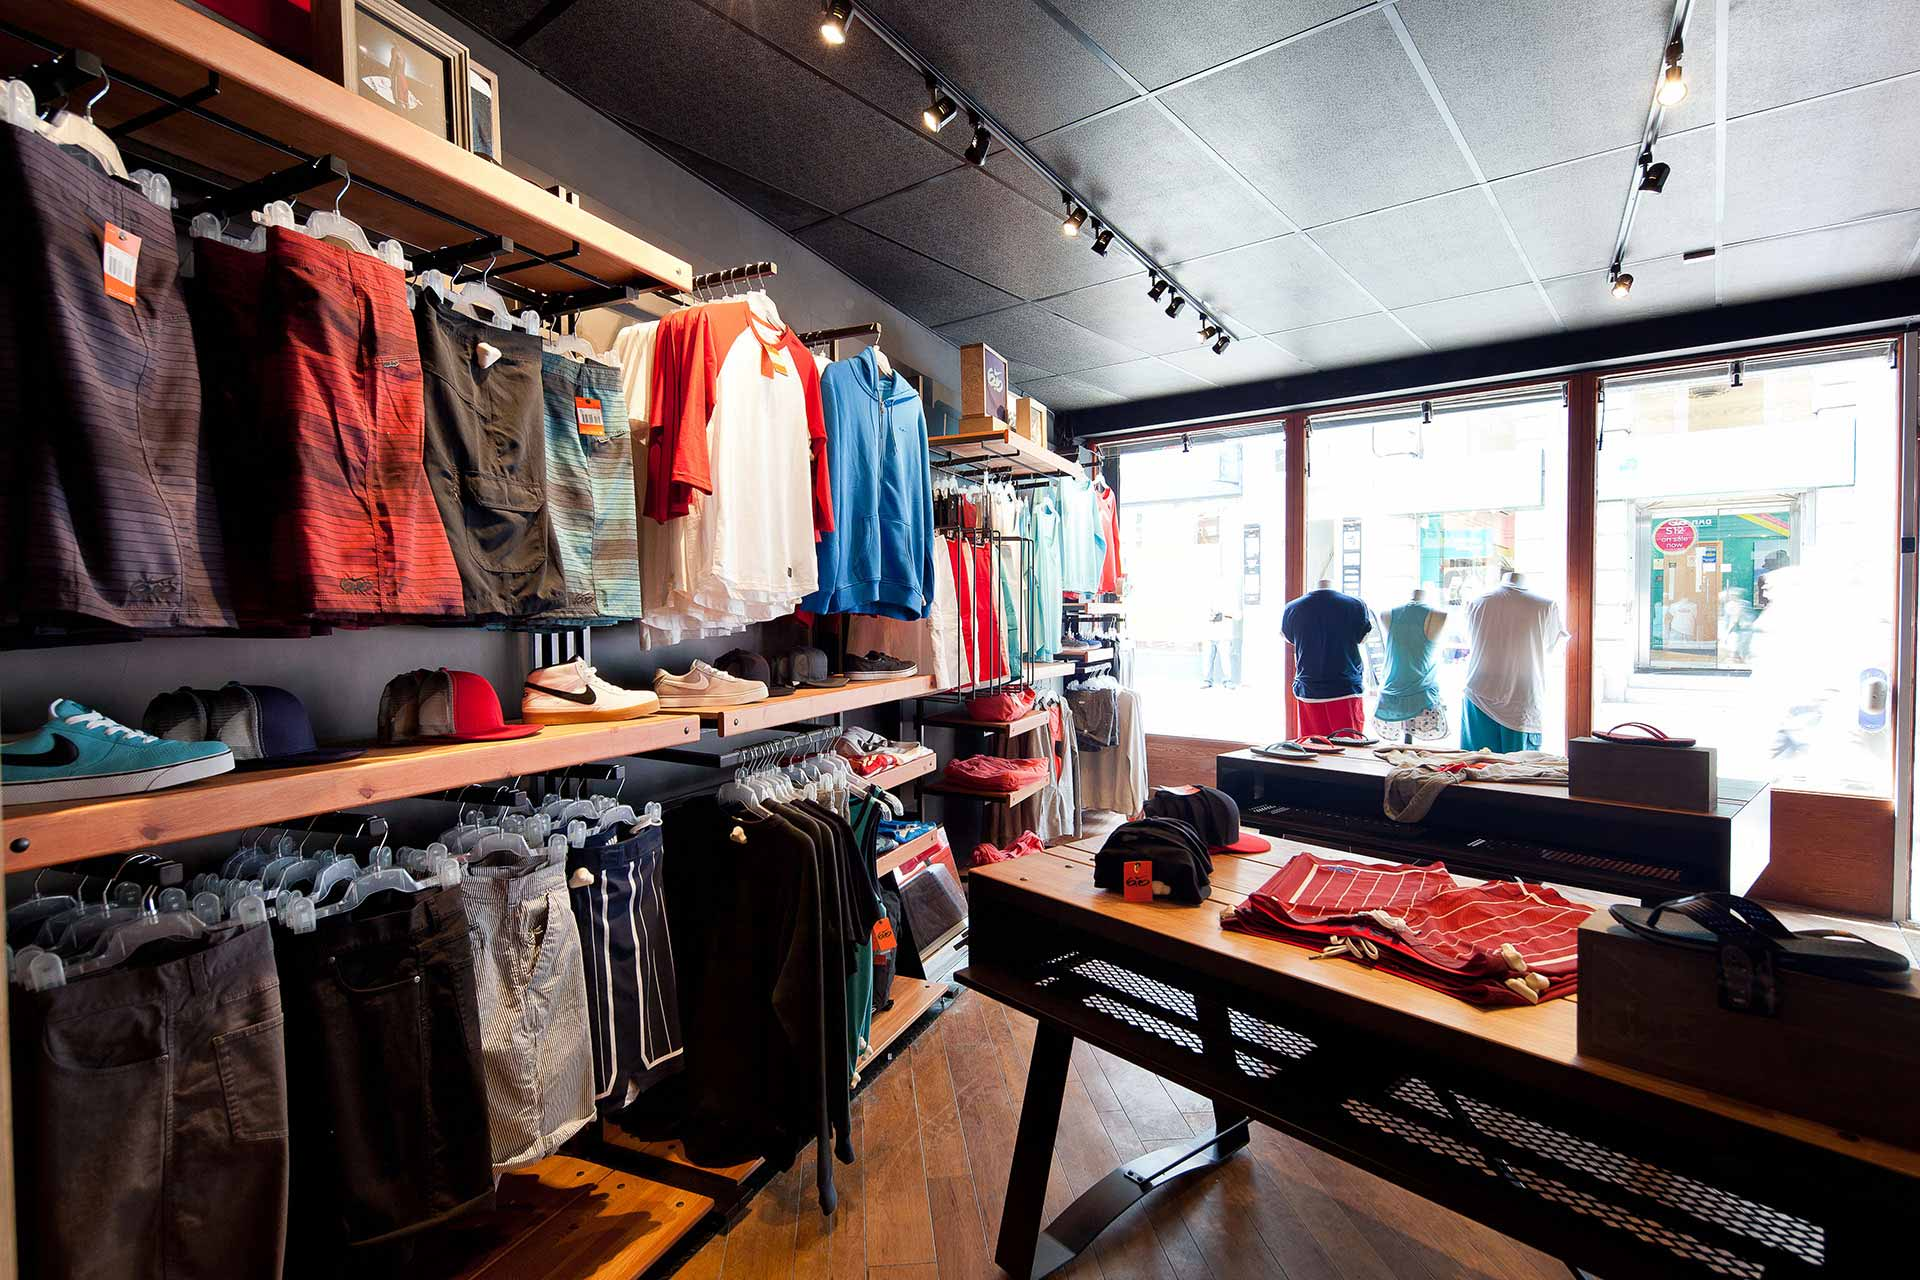 Black walls act as back drop for Nike merchandise